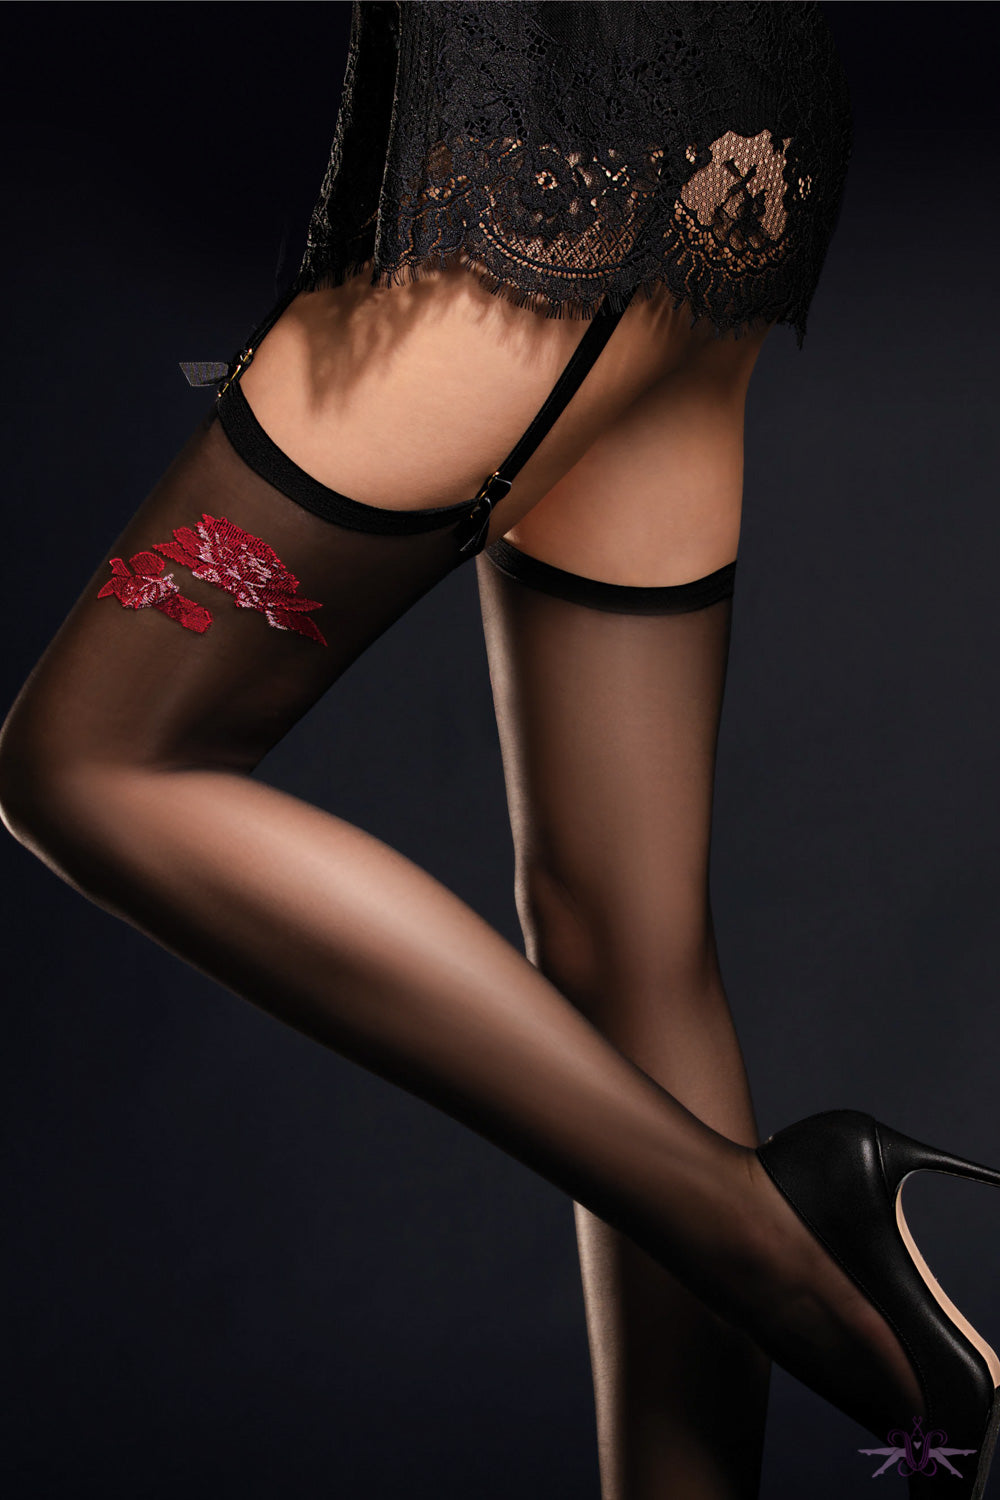 Fiore Sensual Piccante Stockings